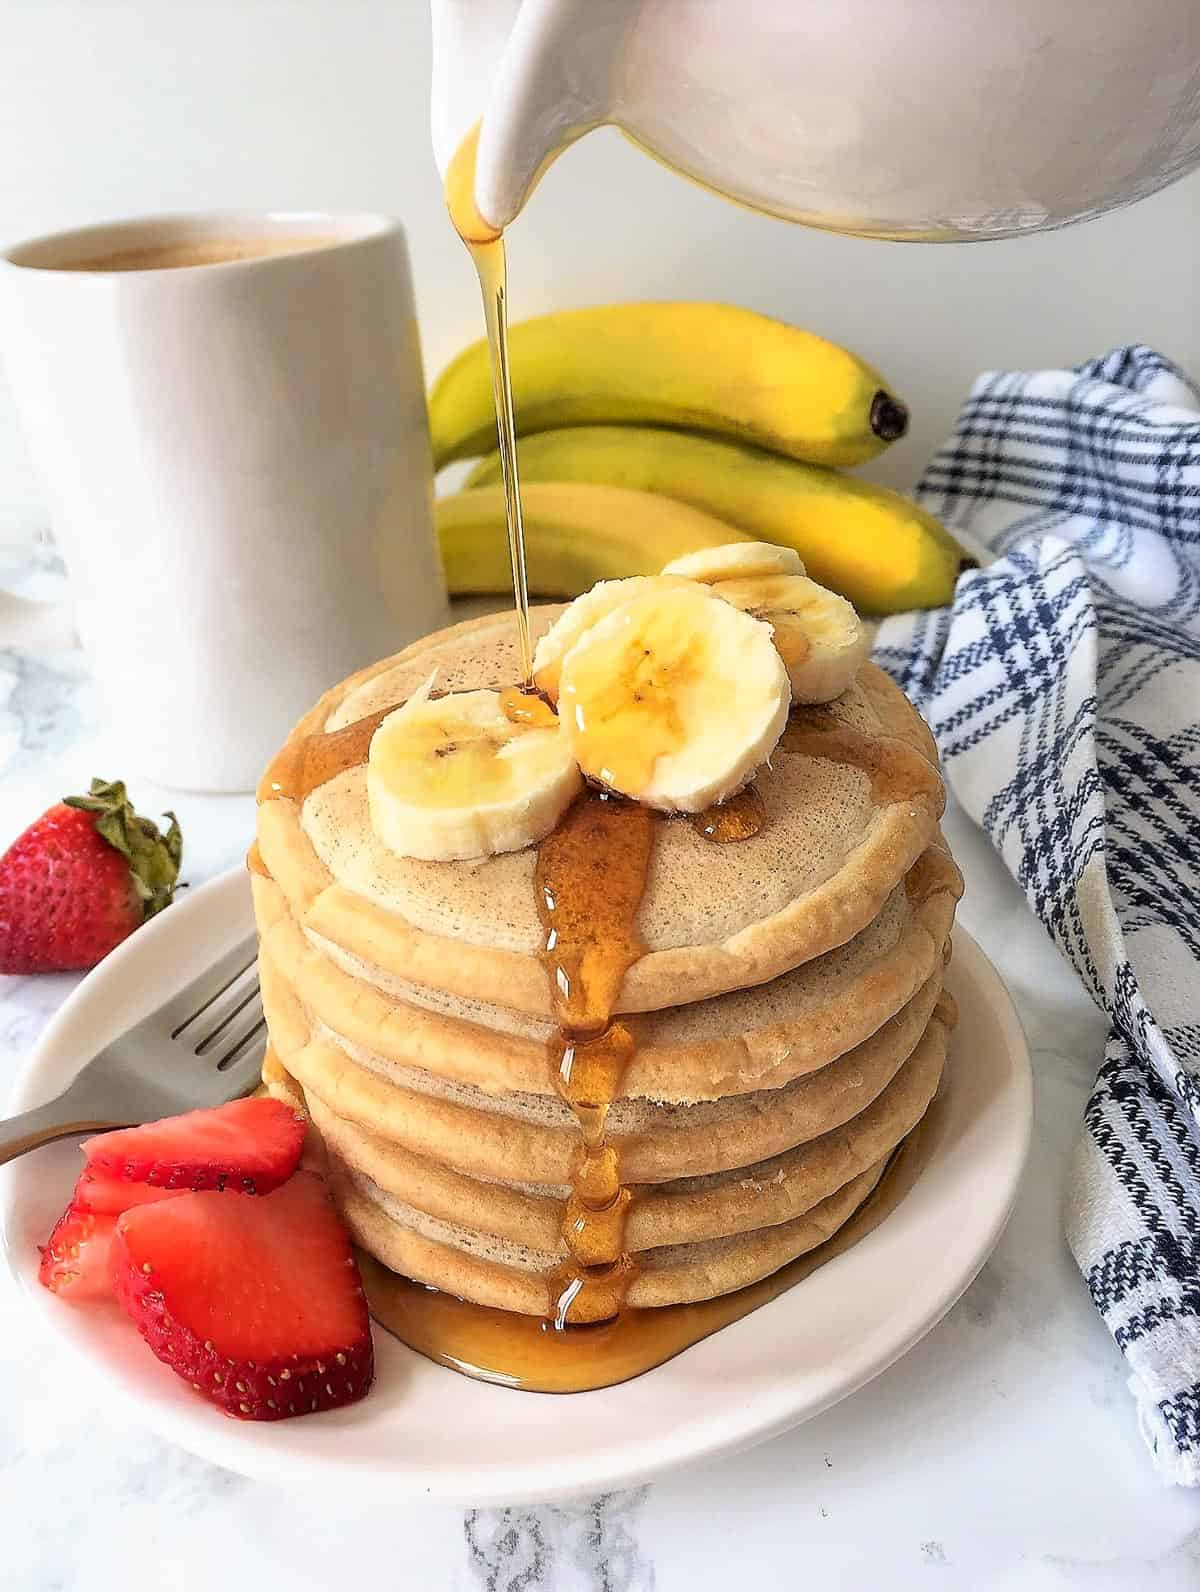 Stack of pancakes on plate with banana and strawberry slices.